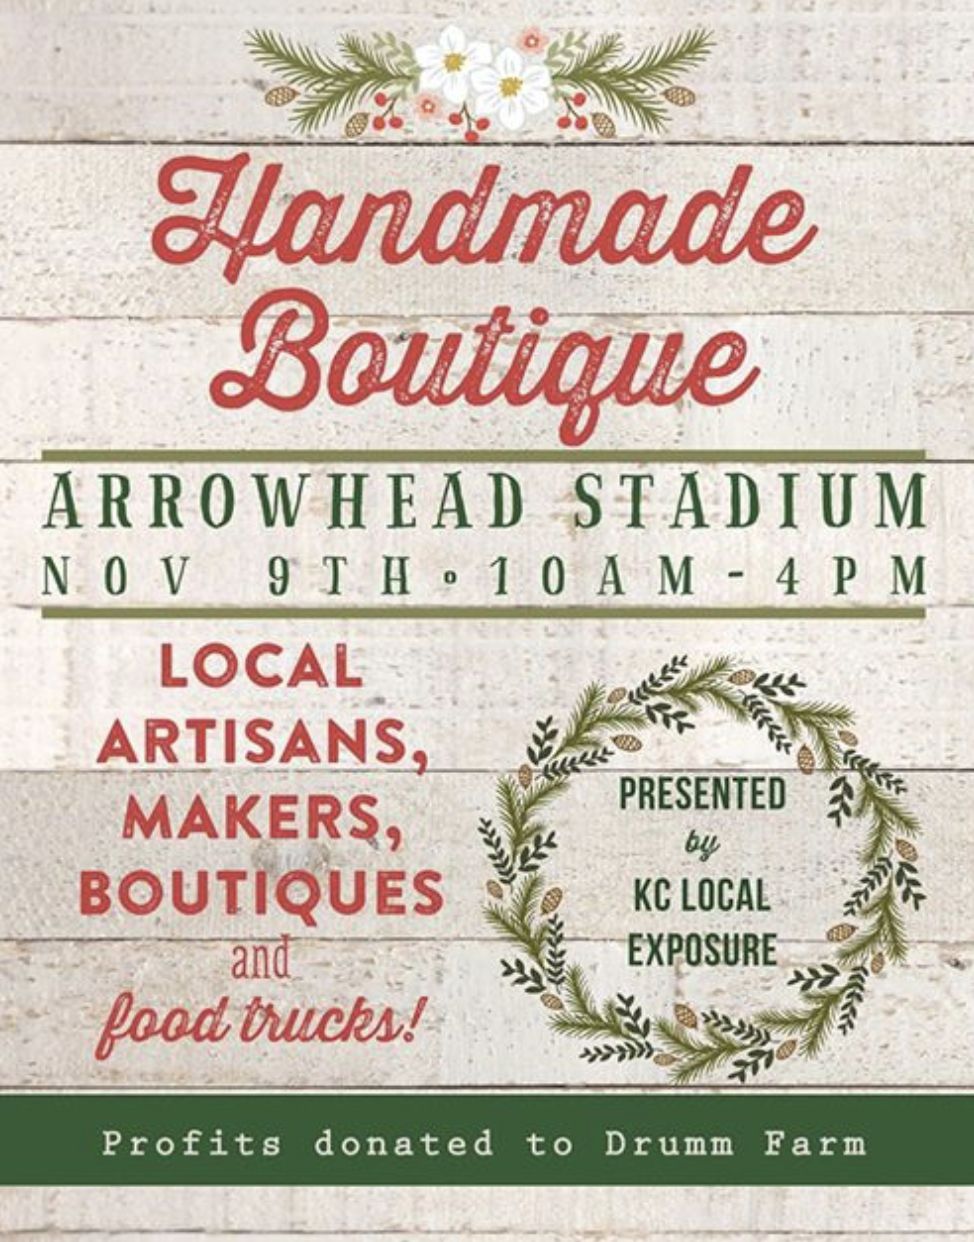 Join us at Arrowhead Stadium Indoor Conference Center  Saturday, November 9, 2019 at 10 AM – 4 PM   Arrowhead Stadium  1 Arrowhead Dr, Kansas City, Missouri 66049   Show Map   Hosted by KC Local Exposure  Located on the South side of the Stadium at the Tower Entrance  We love being apart of this event. Charity Partner for this event is Drumm Farm, dedicated to helping children in foster care, homeless young adults and those aging out of foster care.  Shop all your favorite lavender products. If you are looking for gifts for Christmas, we have you covered.